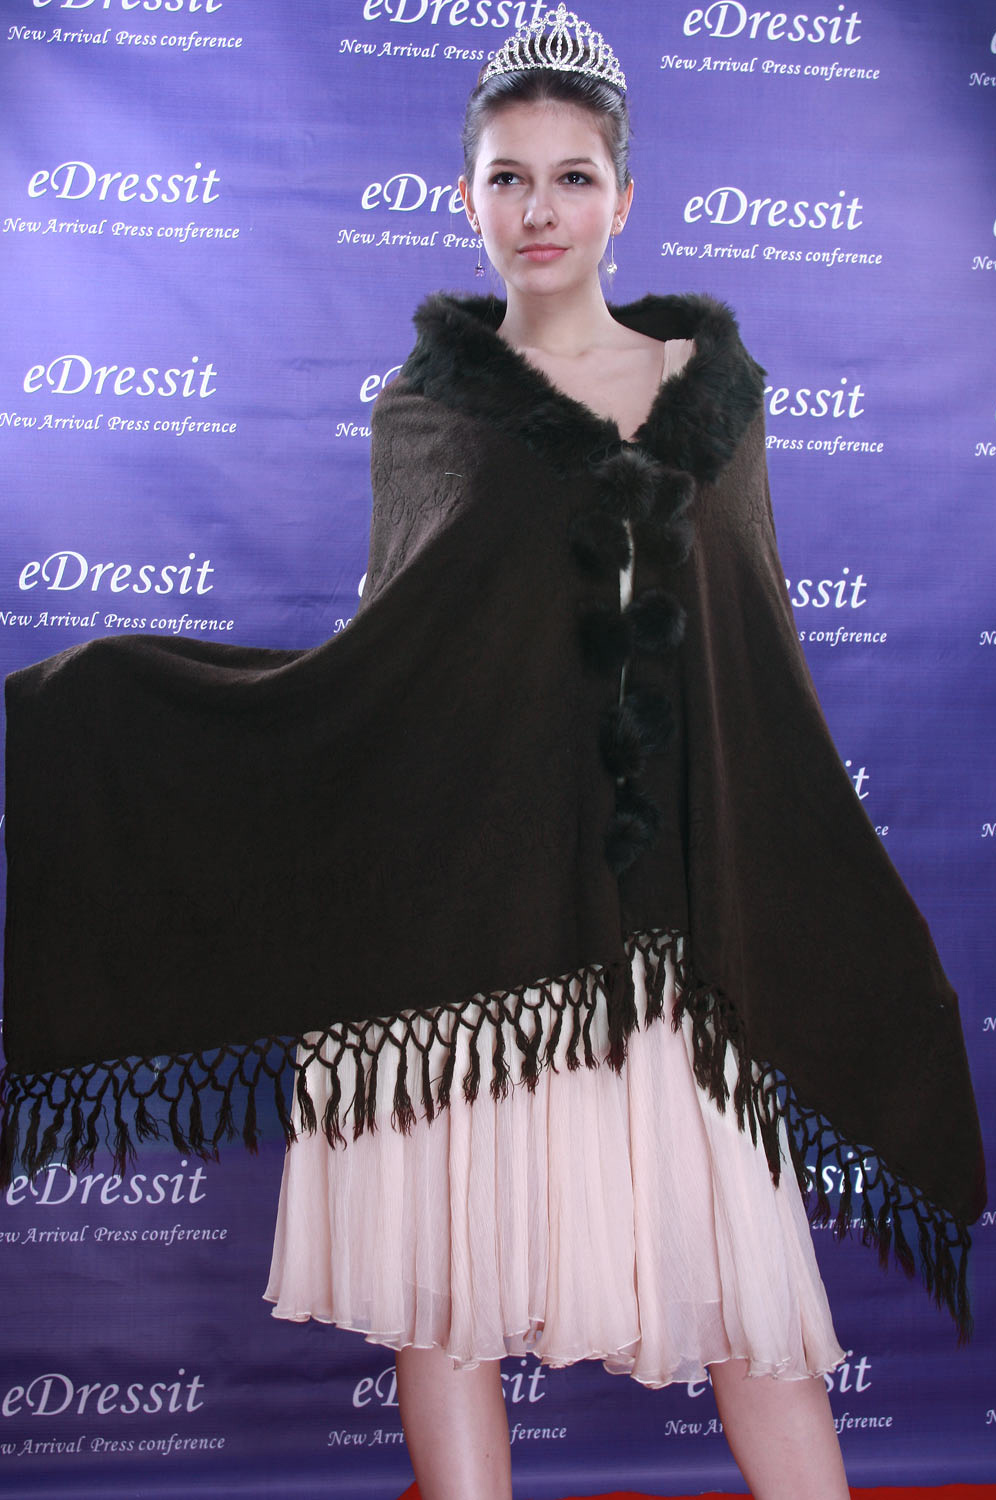 eDressit Brown Shawl/Wrapa/Bolero (14090120)